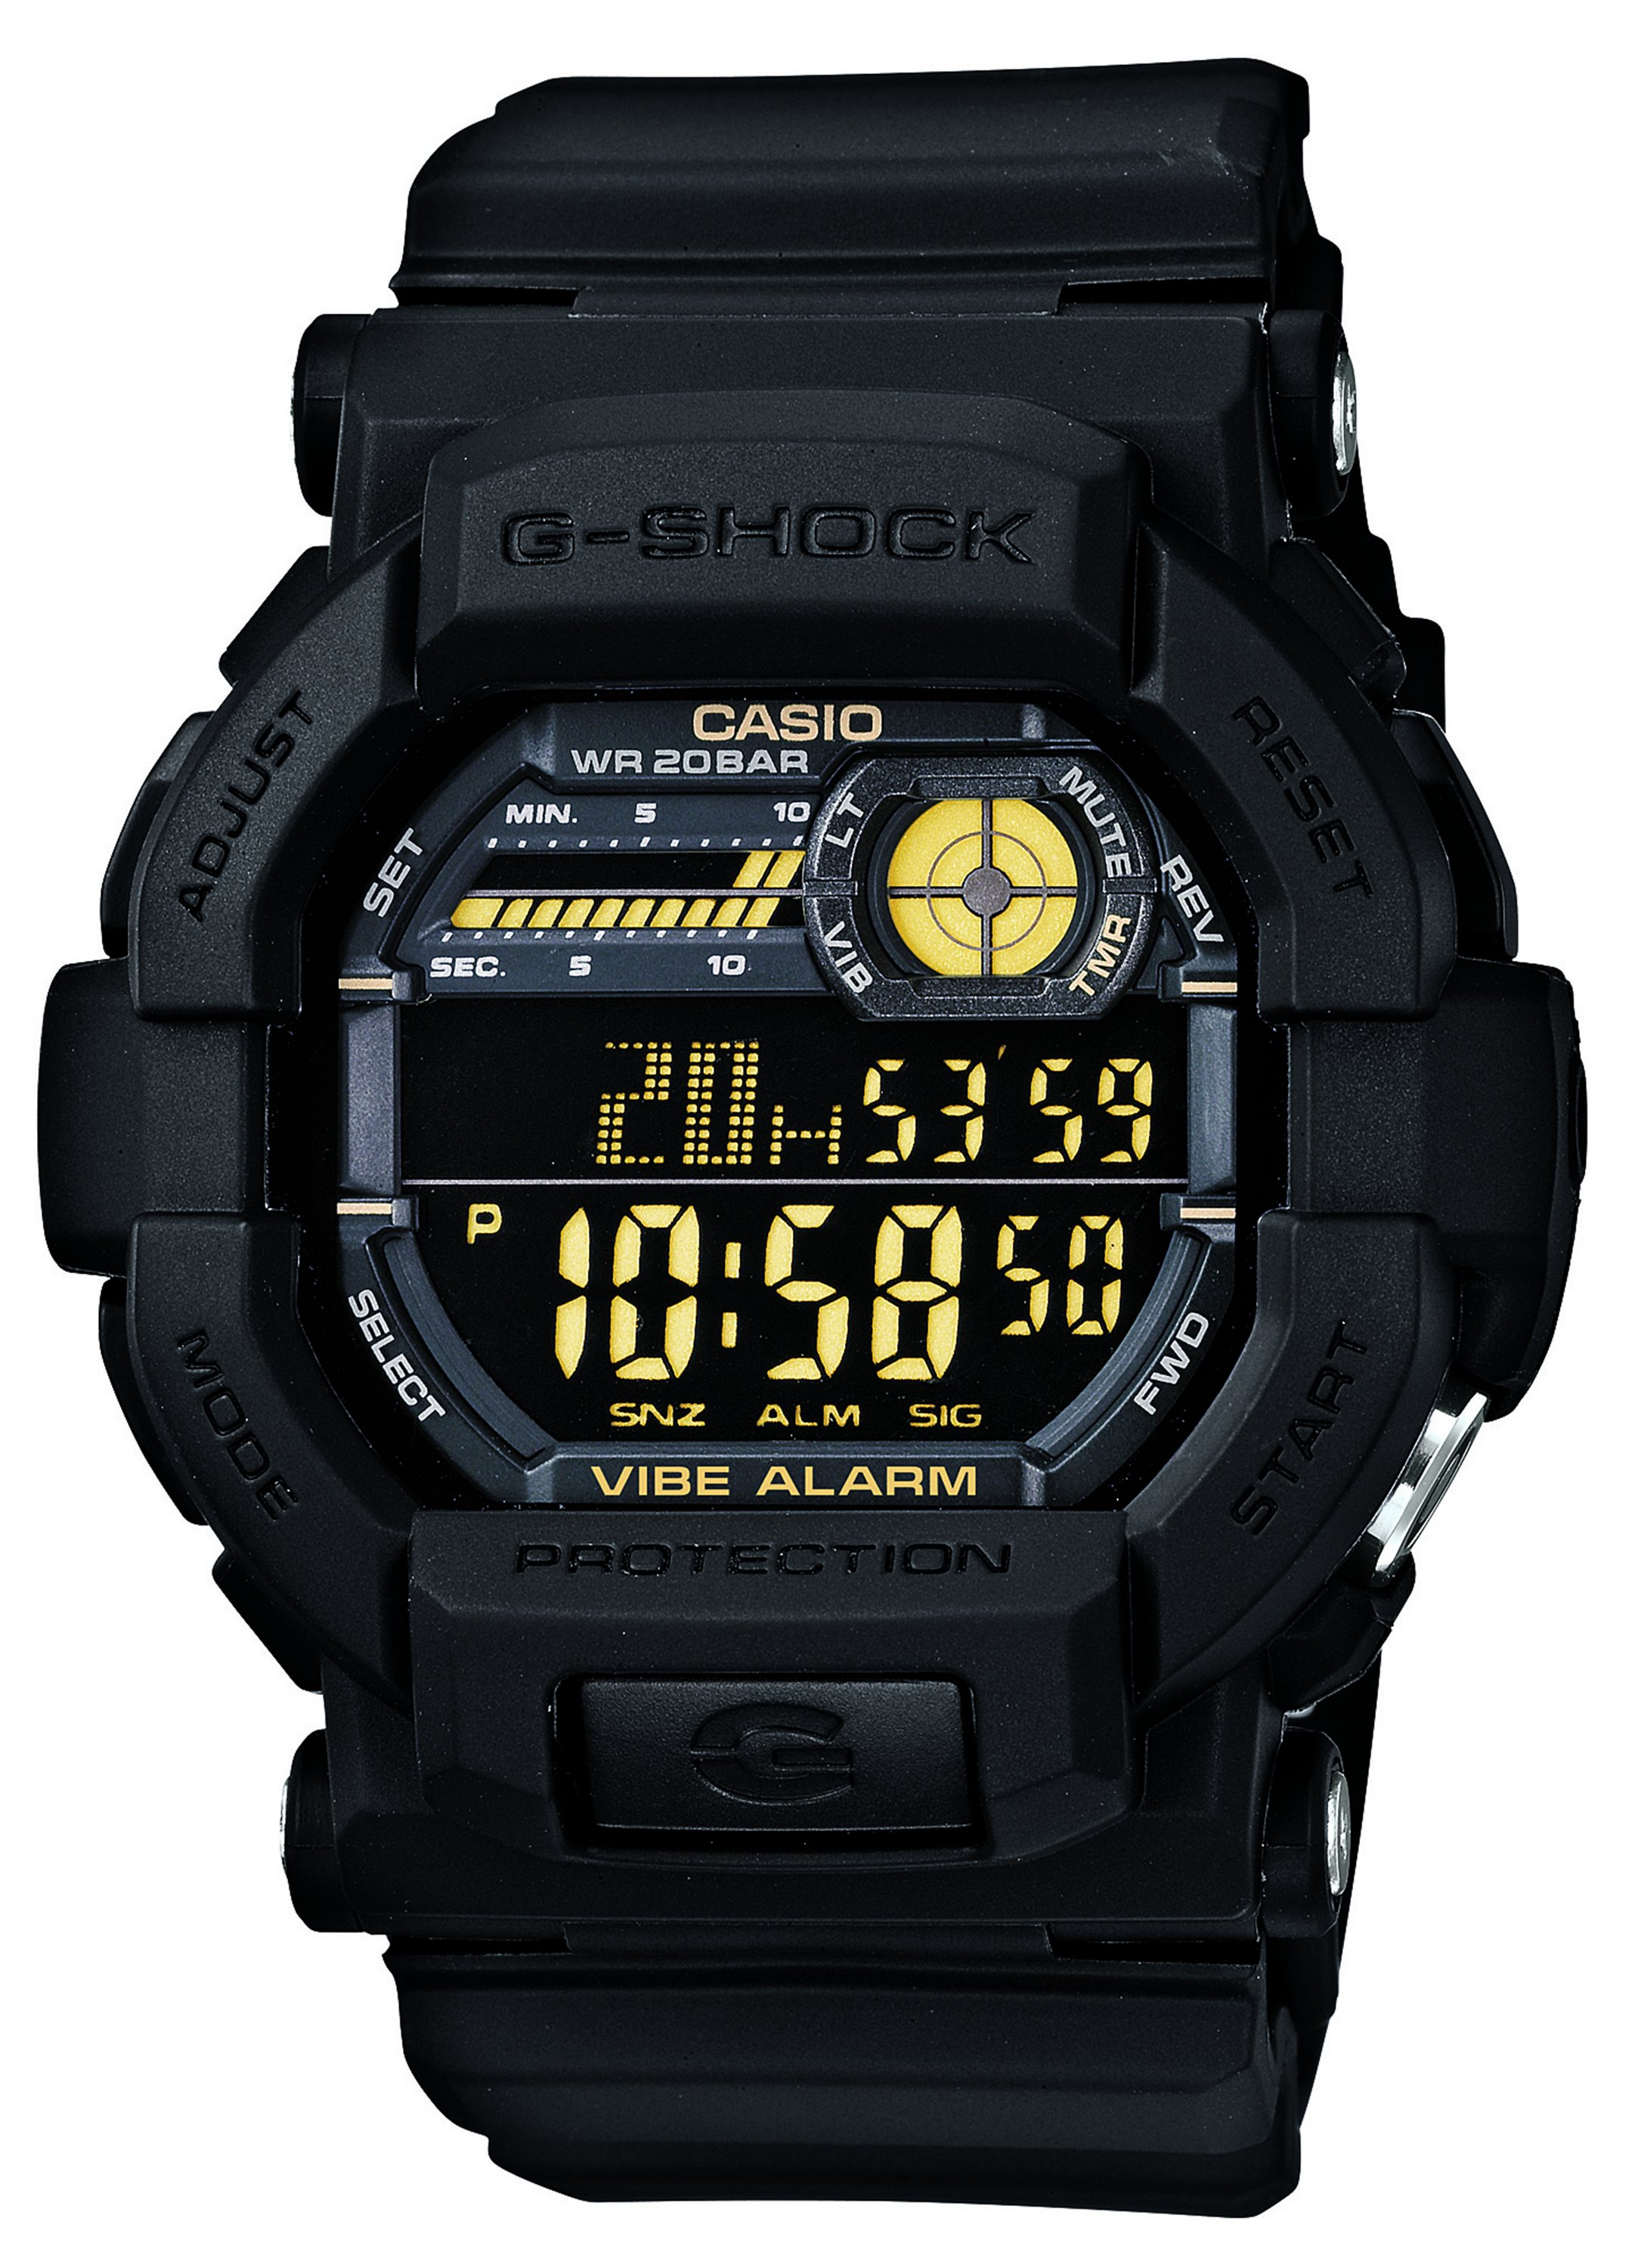 Casio G-Shock Men's Black Resin Strap Vibration Alert Watch